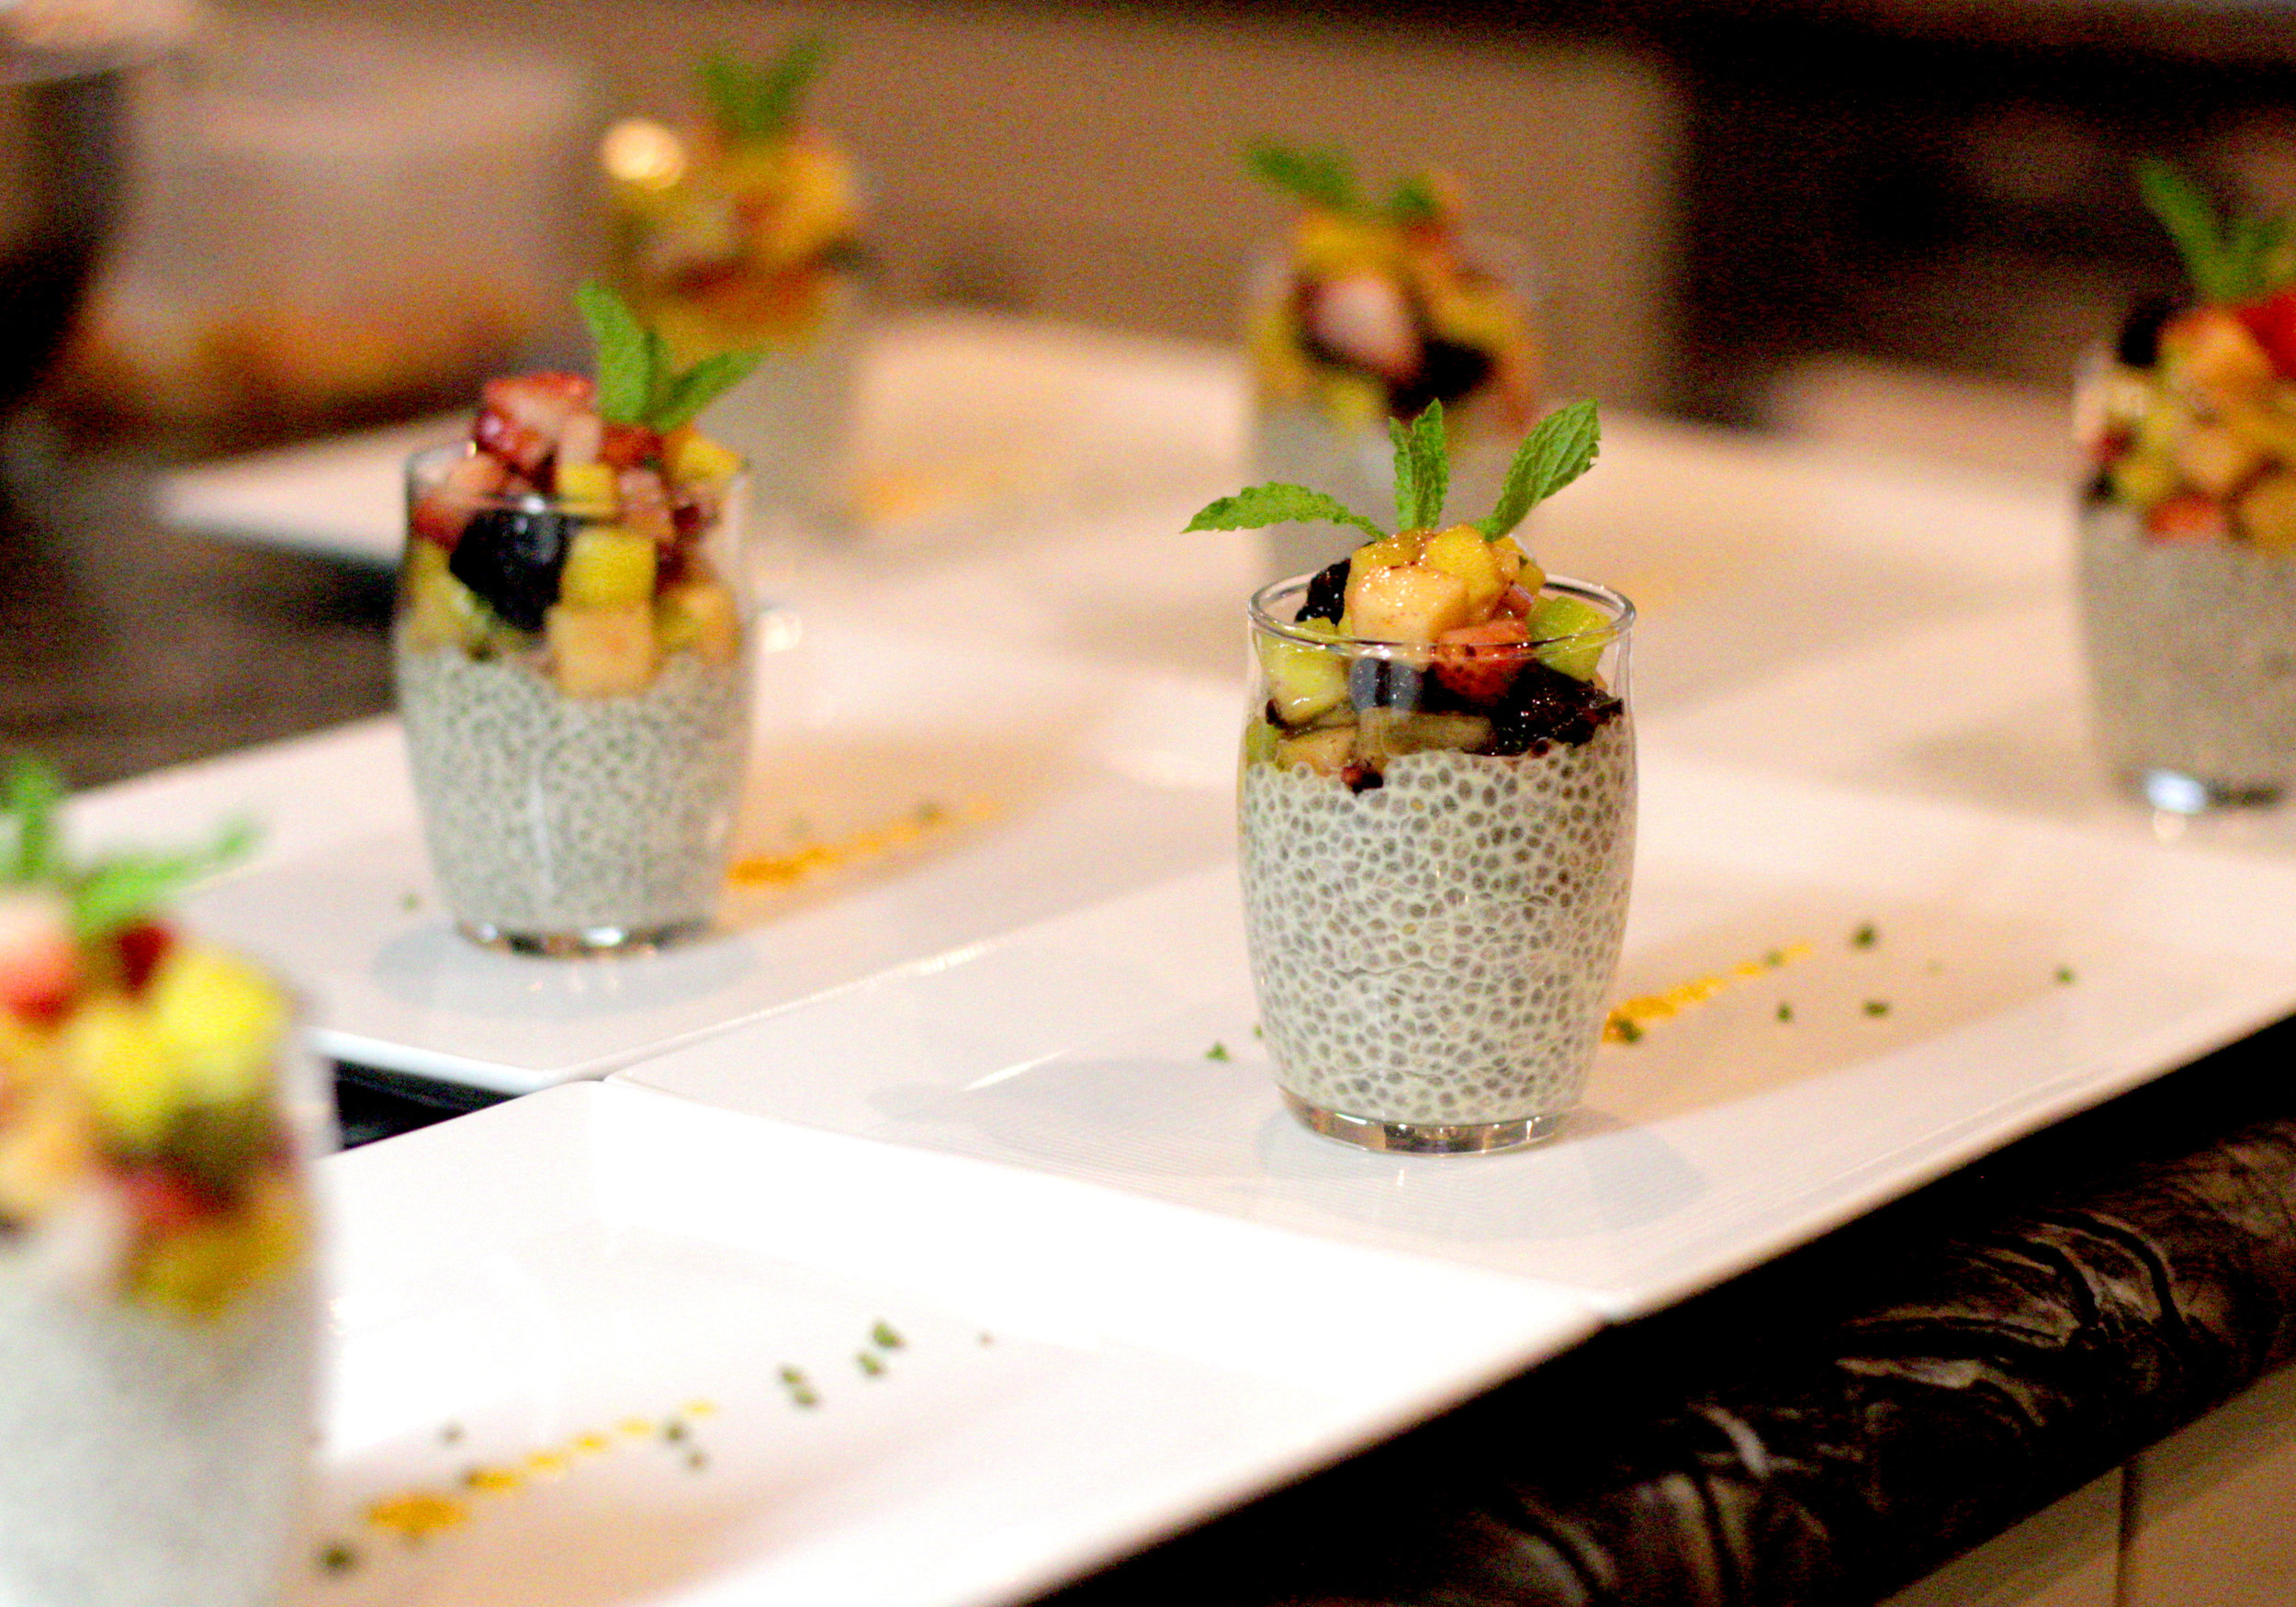 Chia seed pudding with mango coulis and seasonal fruit salpicon. A sugar-free healthy dessert alternative.